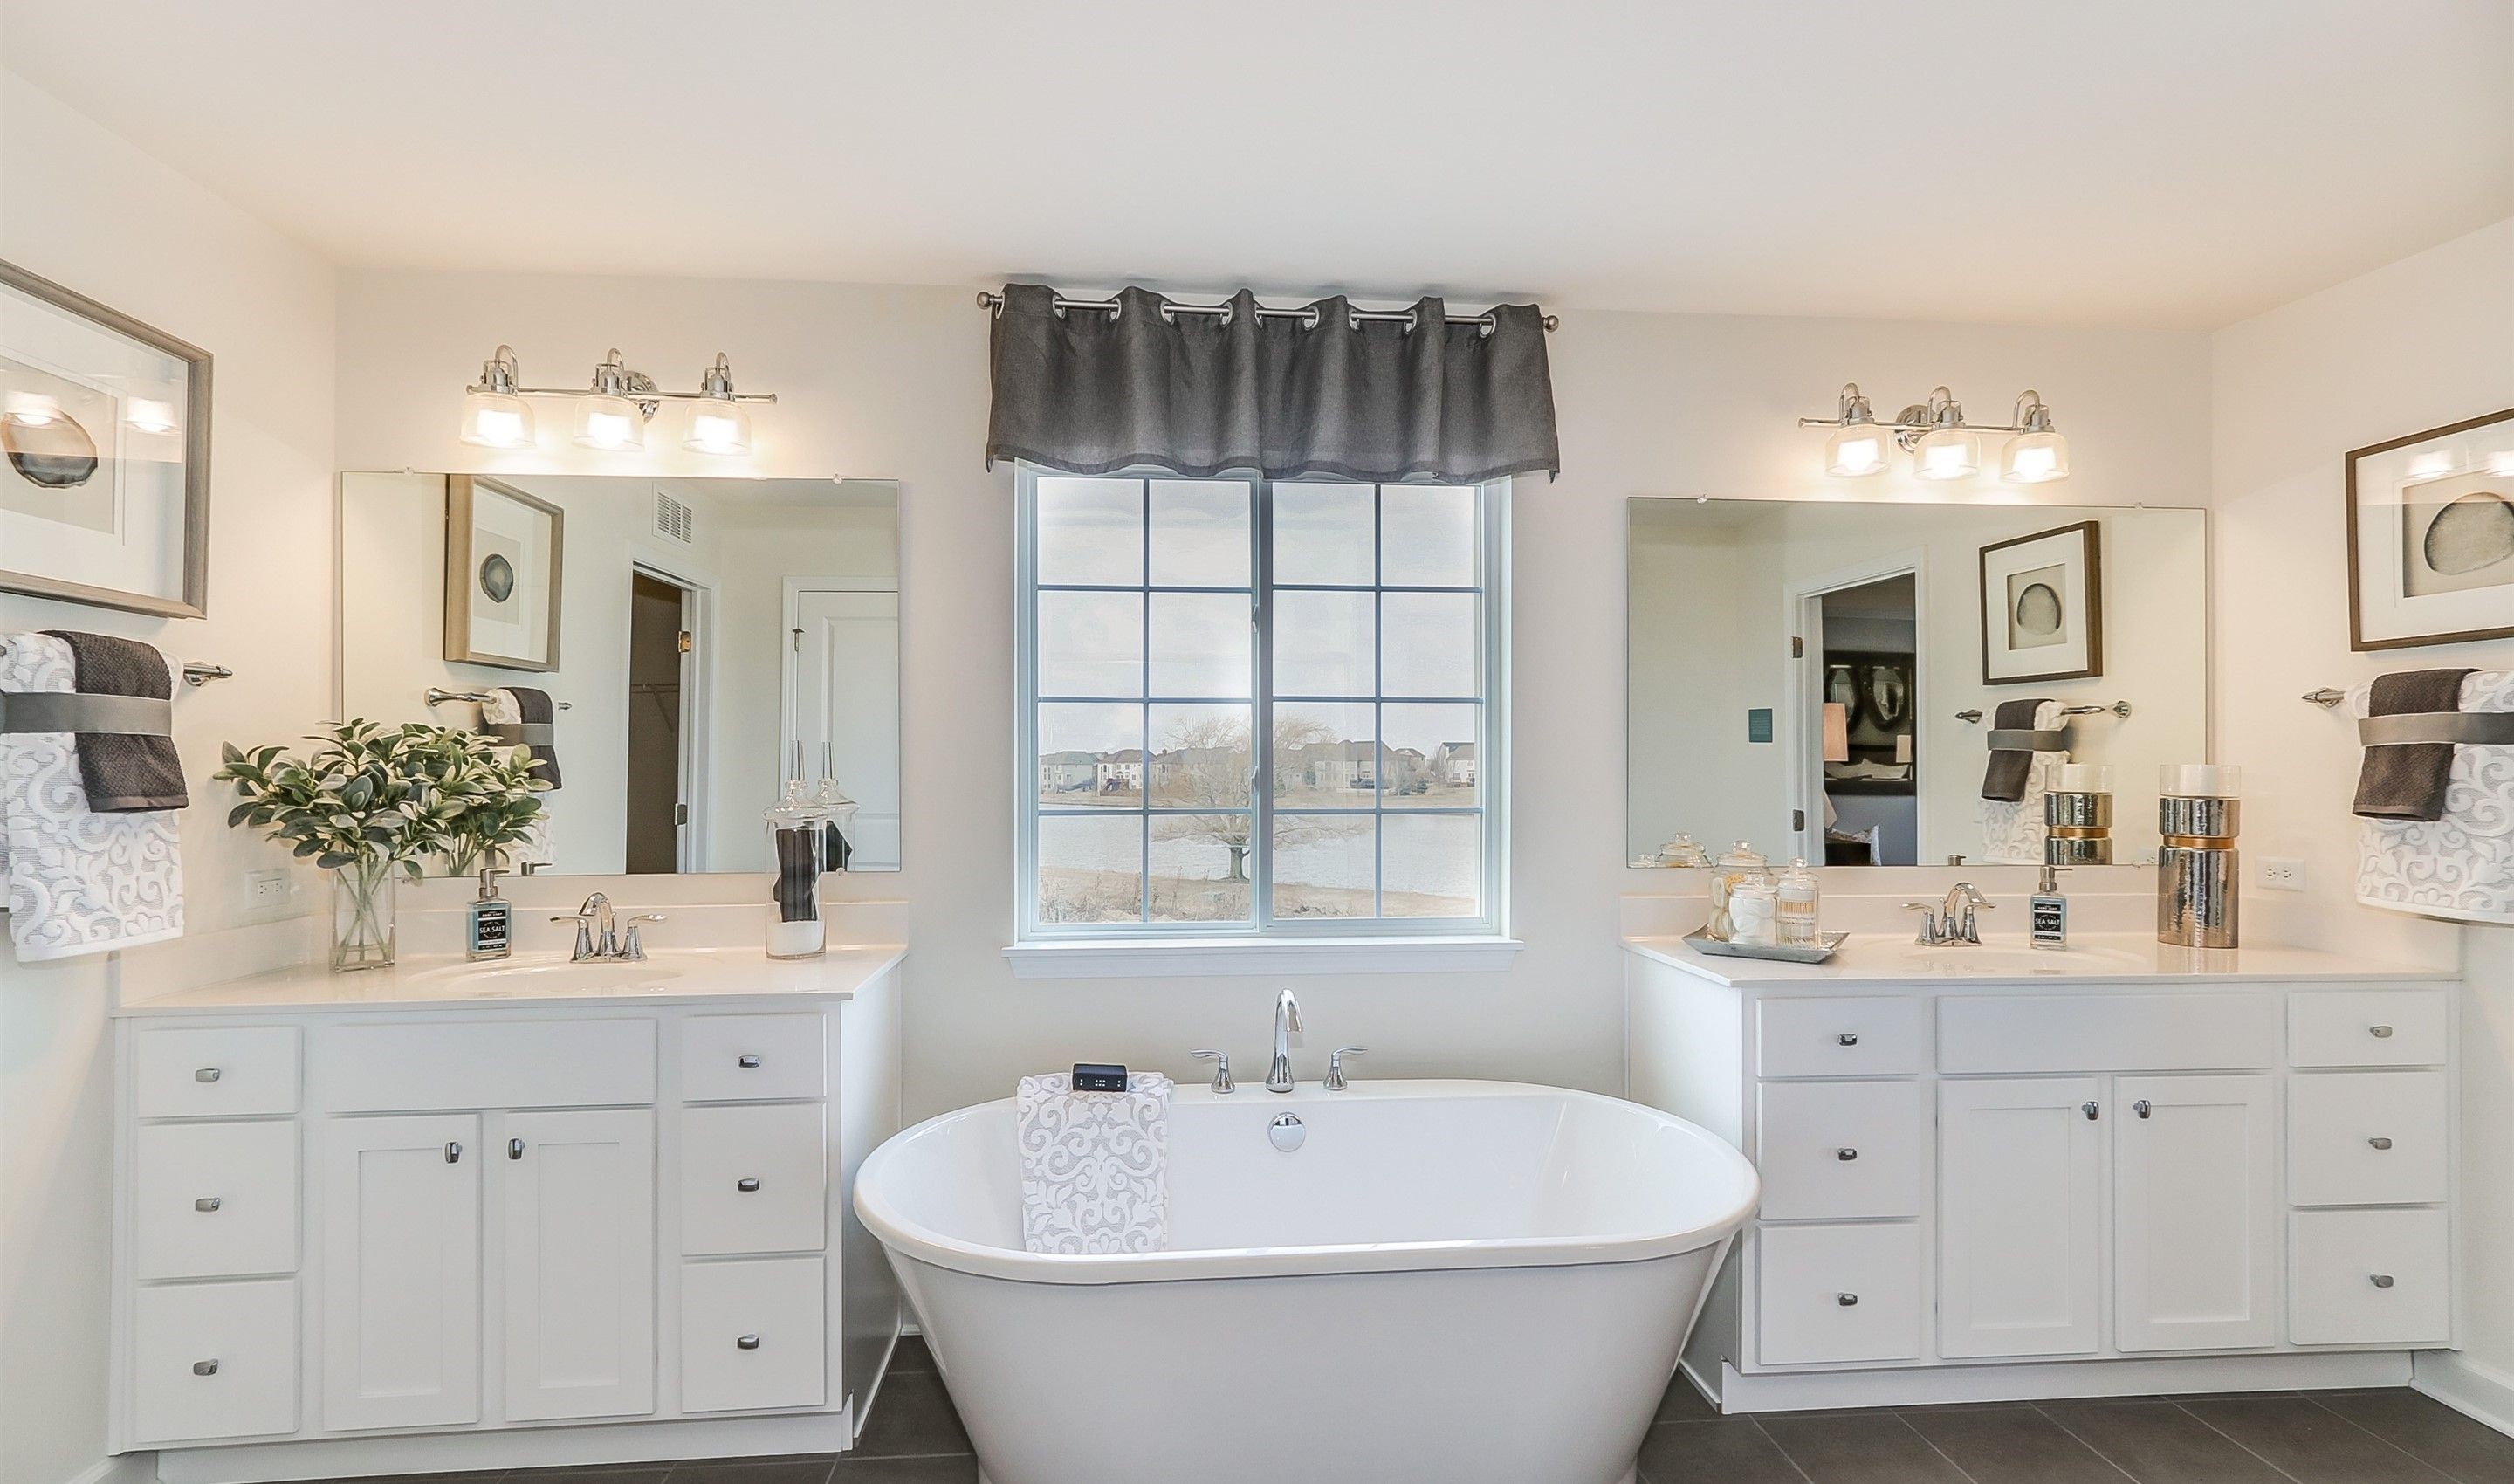 Bathroom featured in the Blakely By K. Hovnanian® Homes in Washington, VA